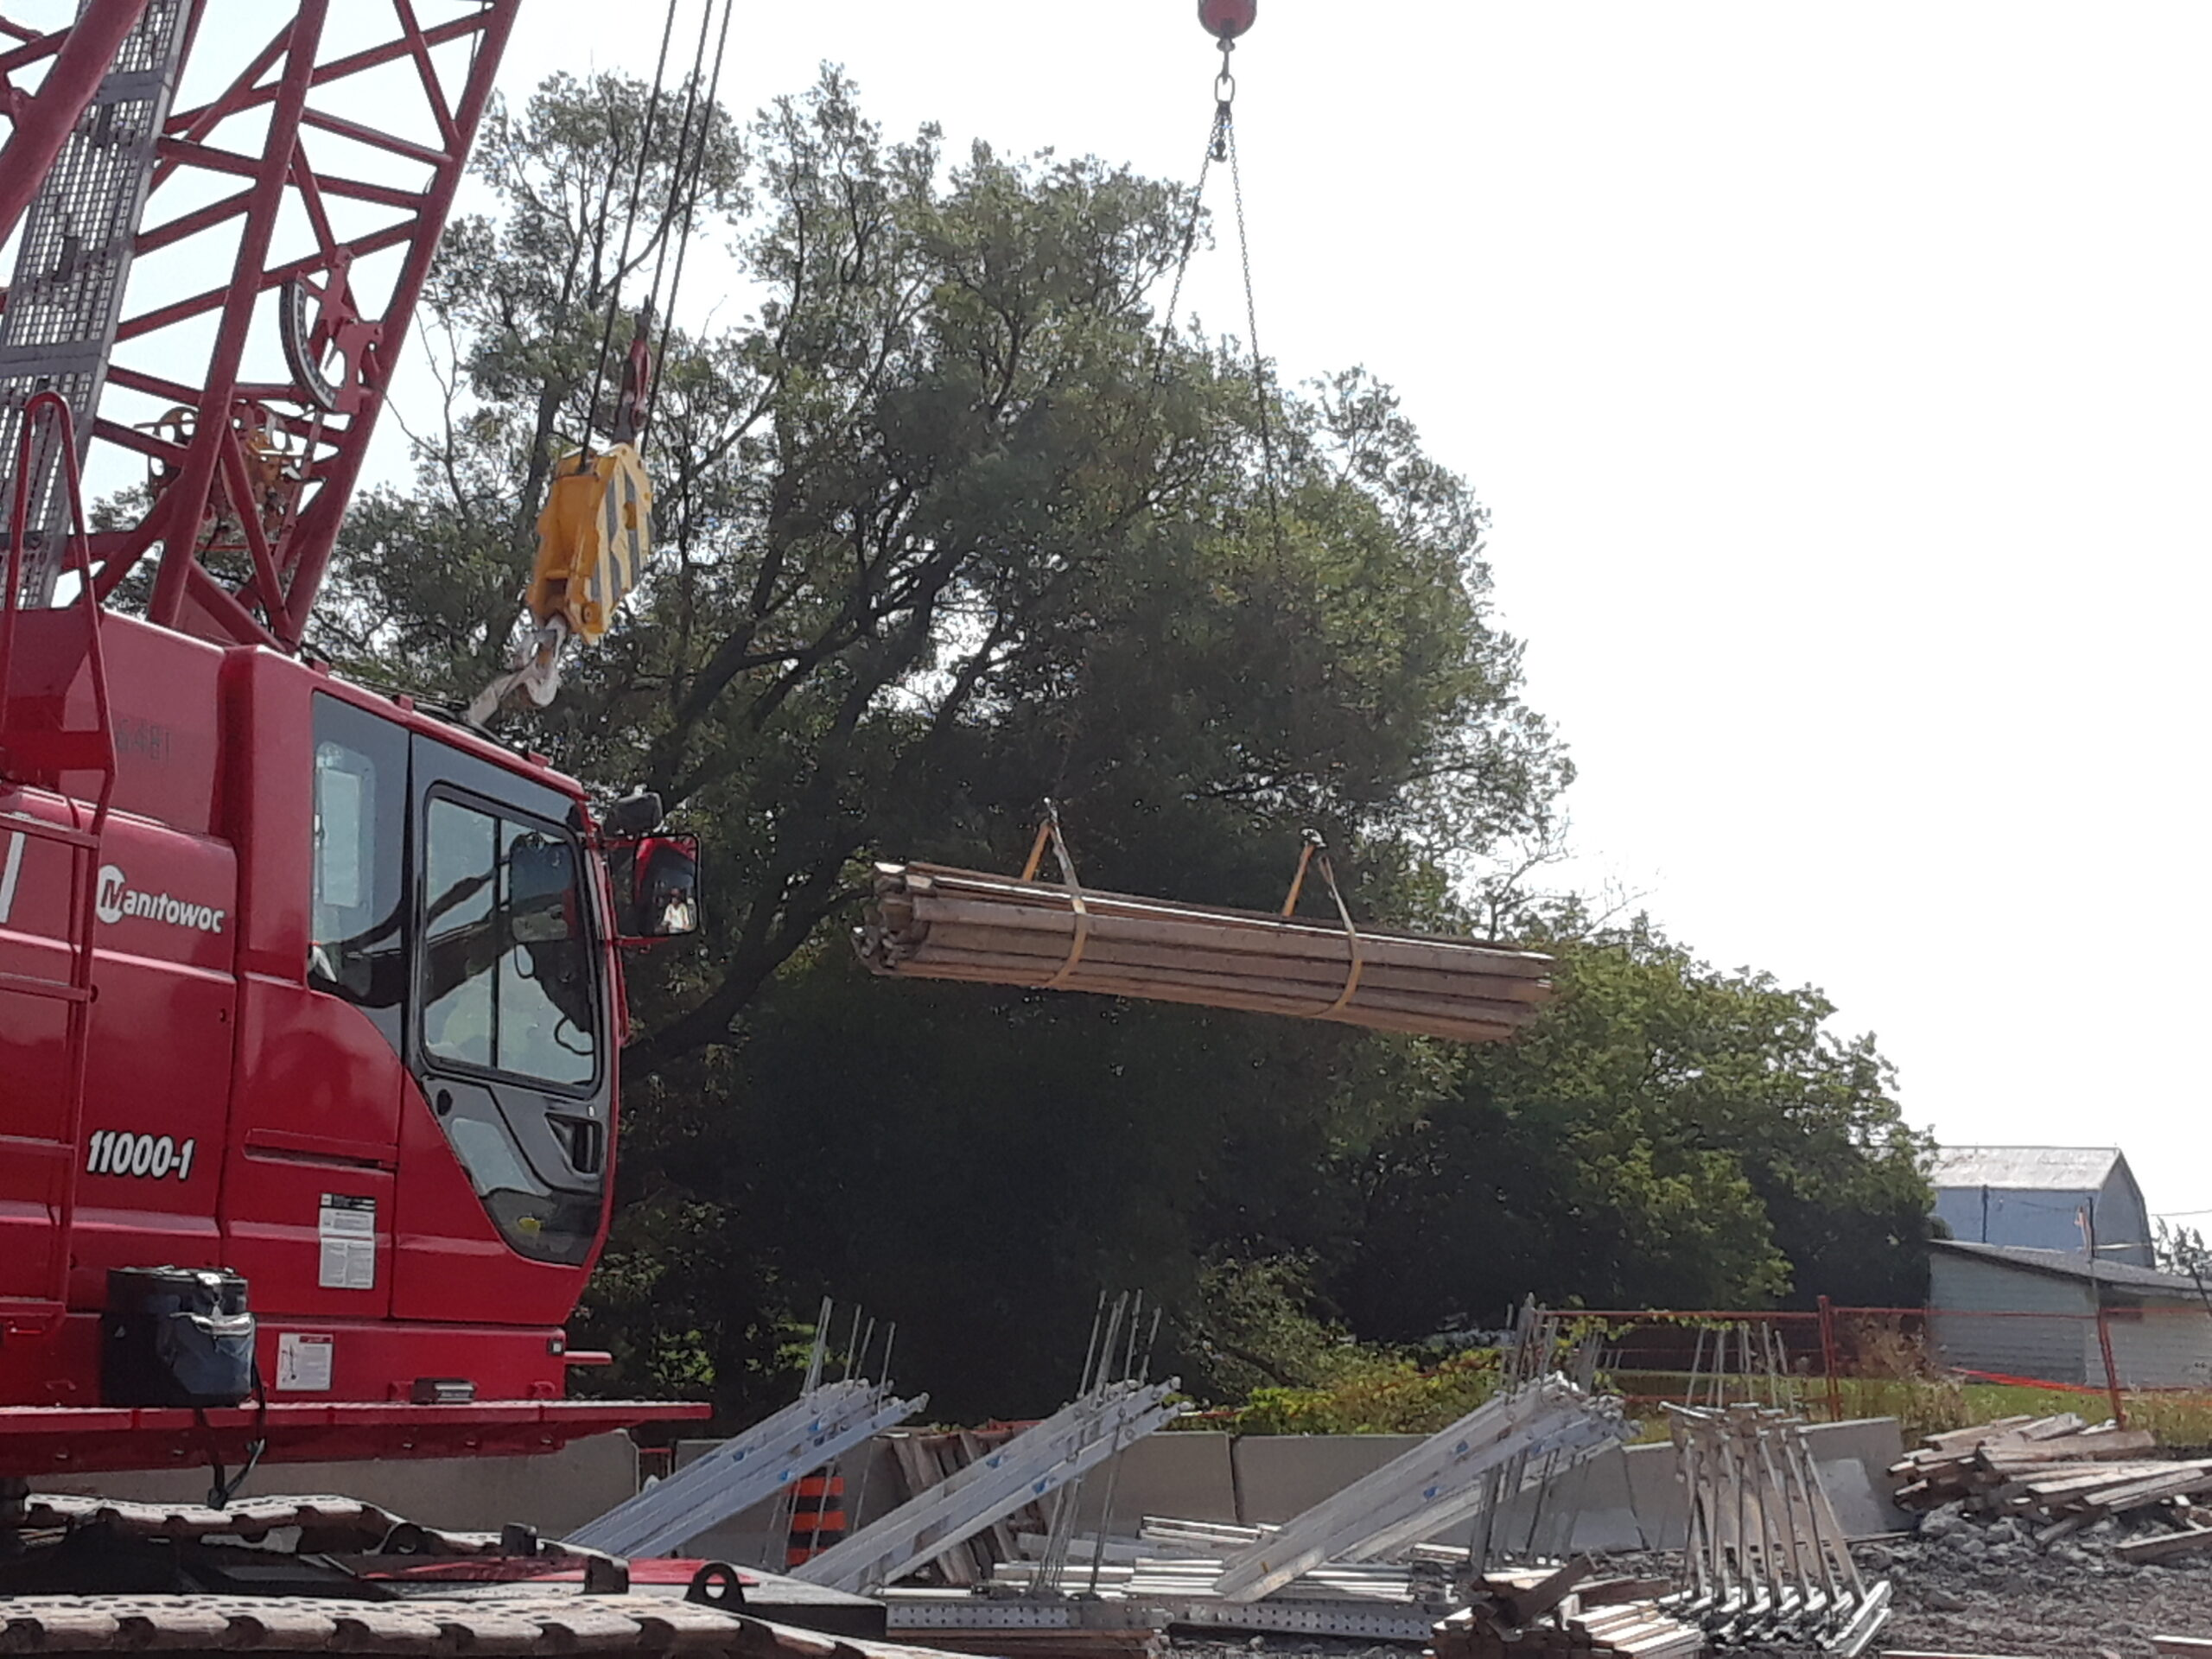 Work platform pieces being removed from the barge